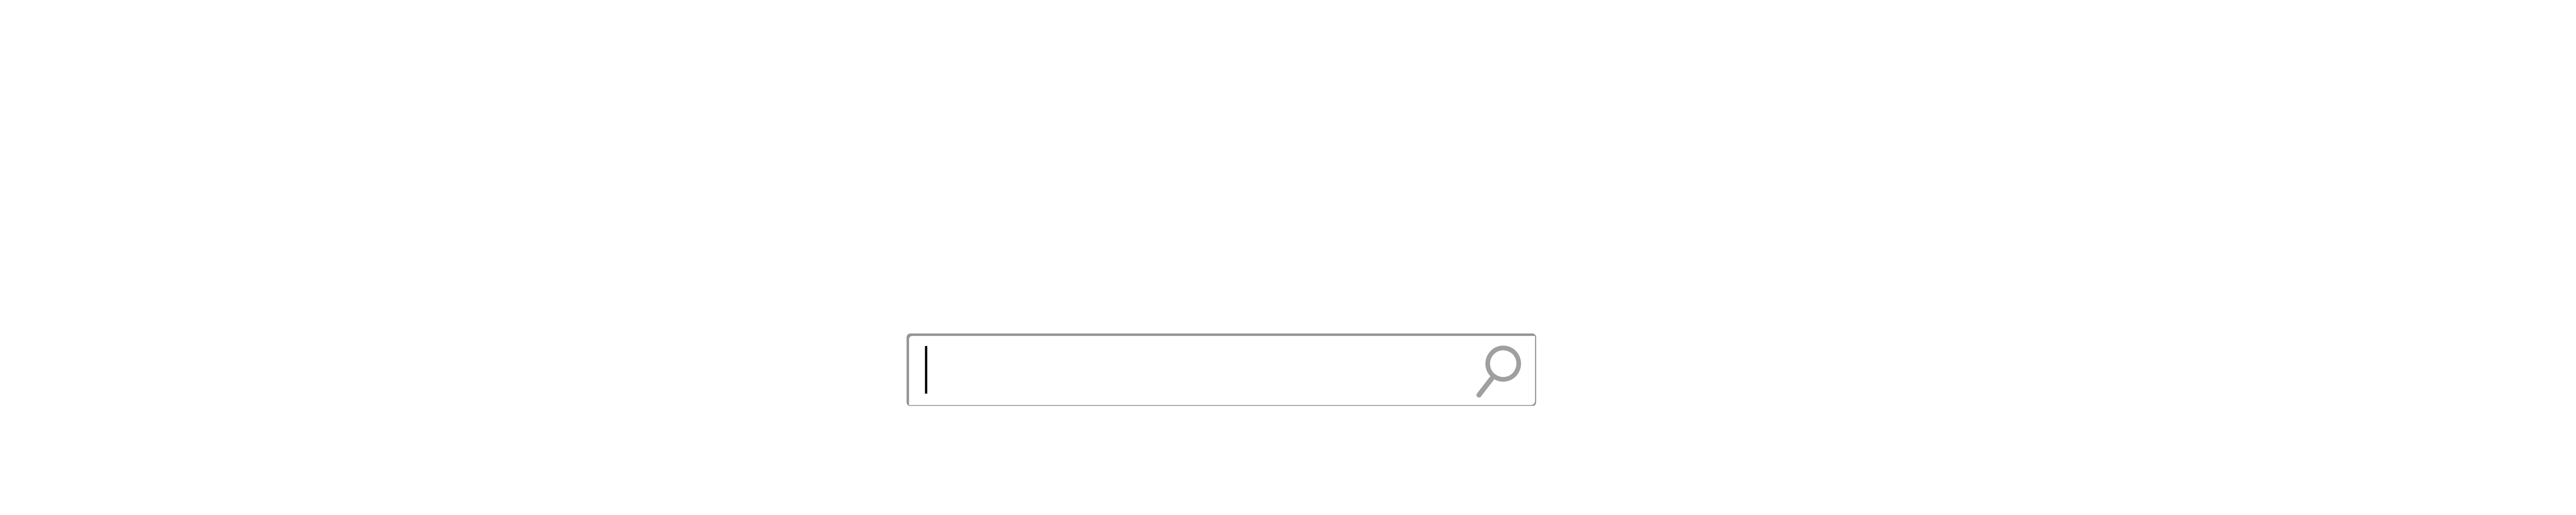 Search Homes in Scenic heights